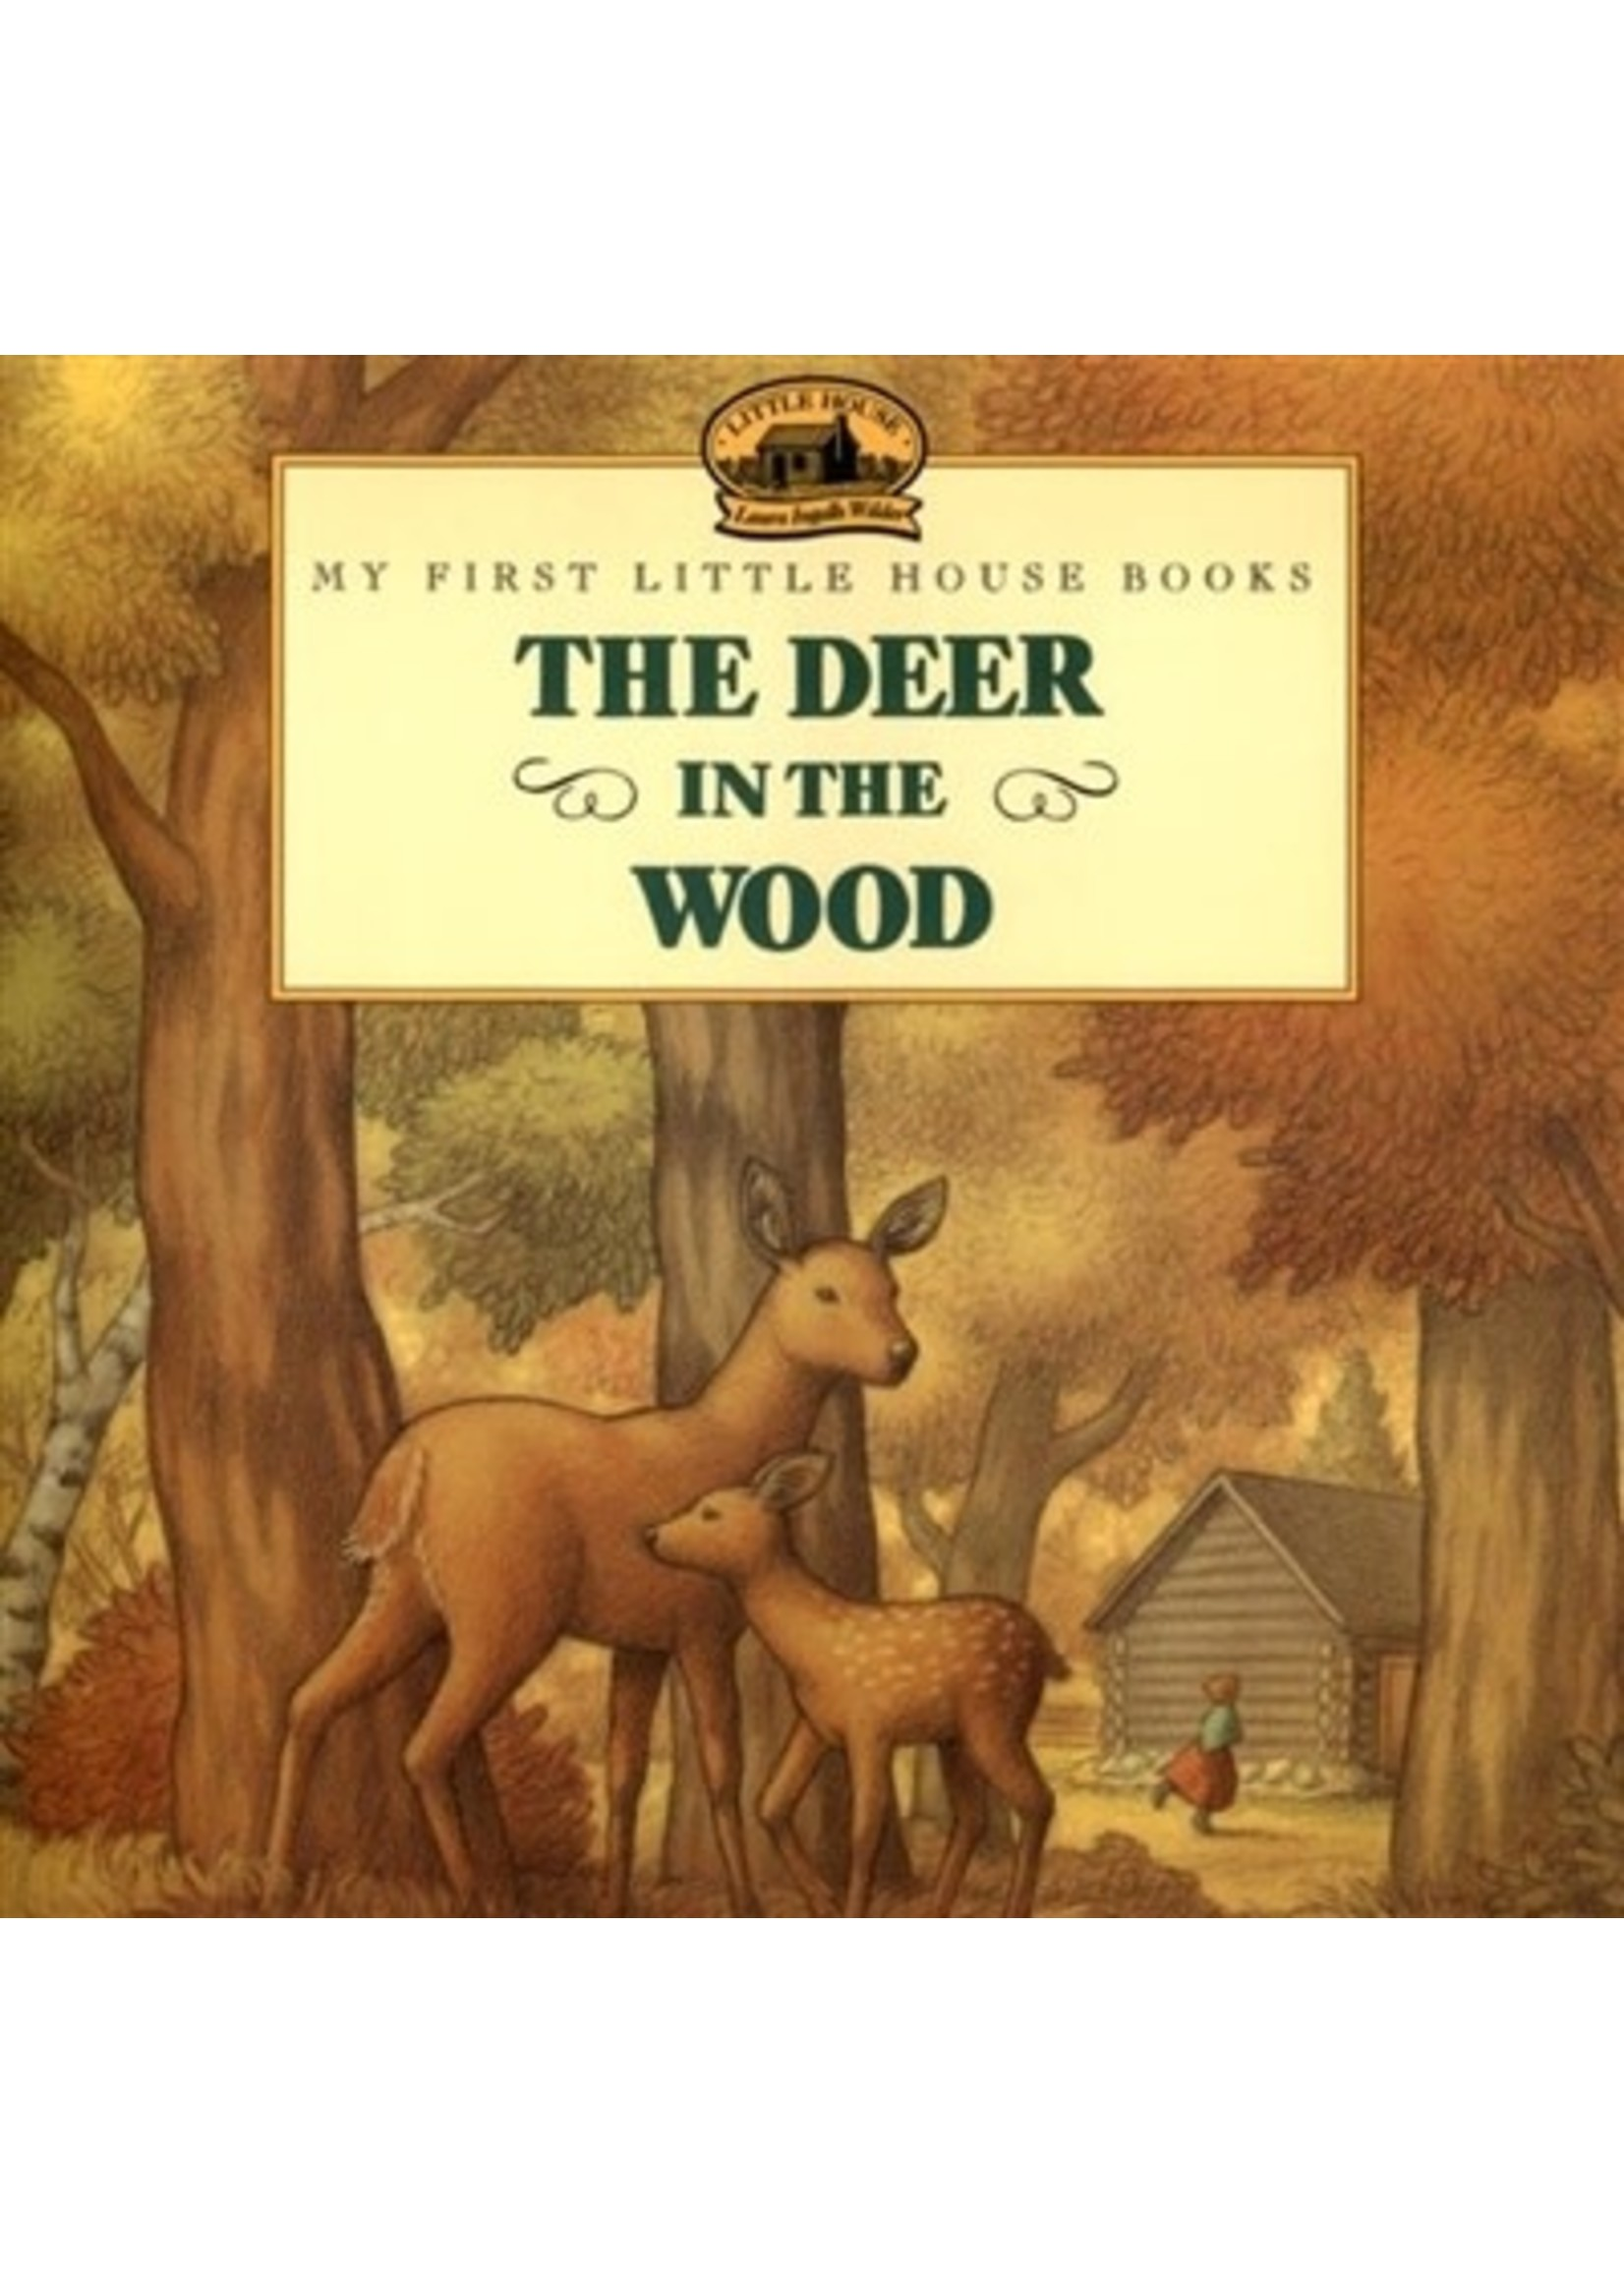 My First Little House Books: The Deer in the Wood